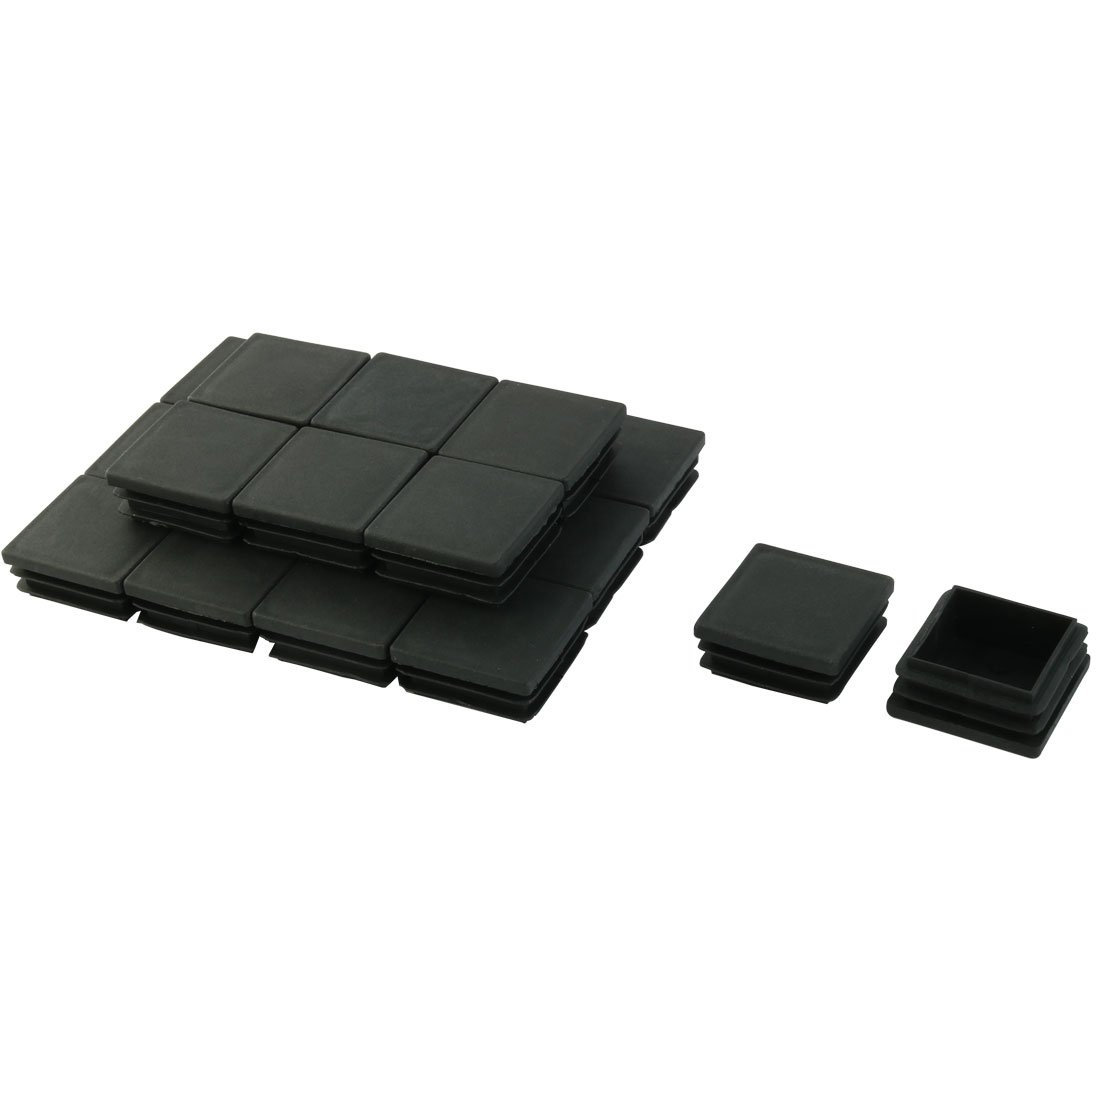 20pcs Black Plastic Square Blanking End Caps Tube Inserts 38mm x 38mm uxcell a14082800ux0060